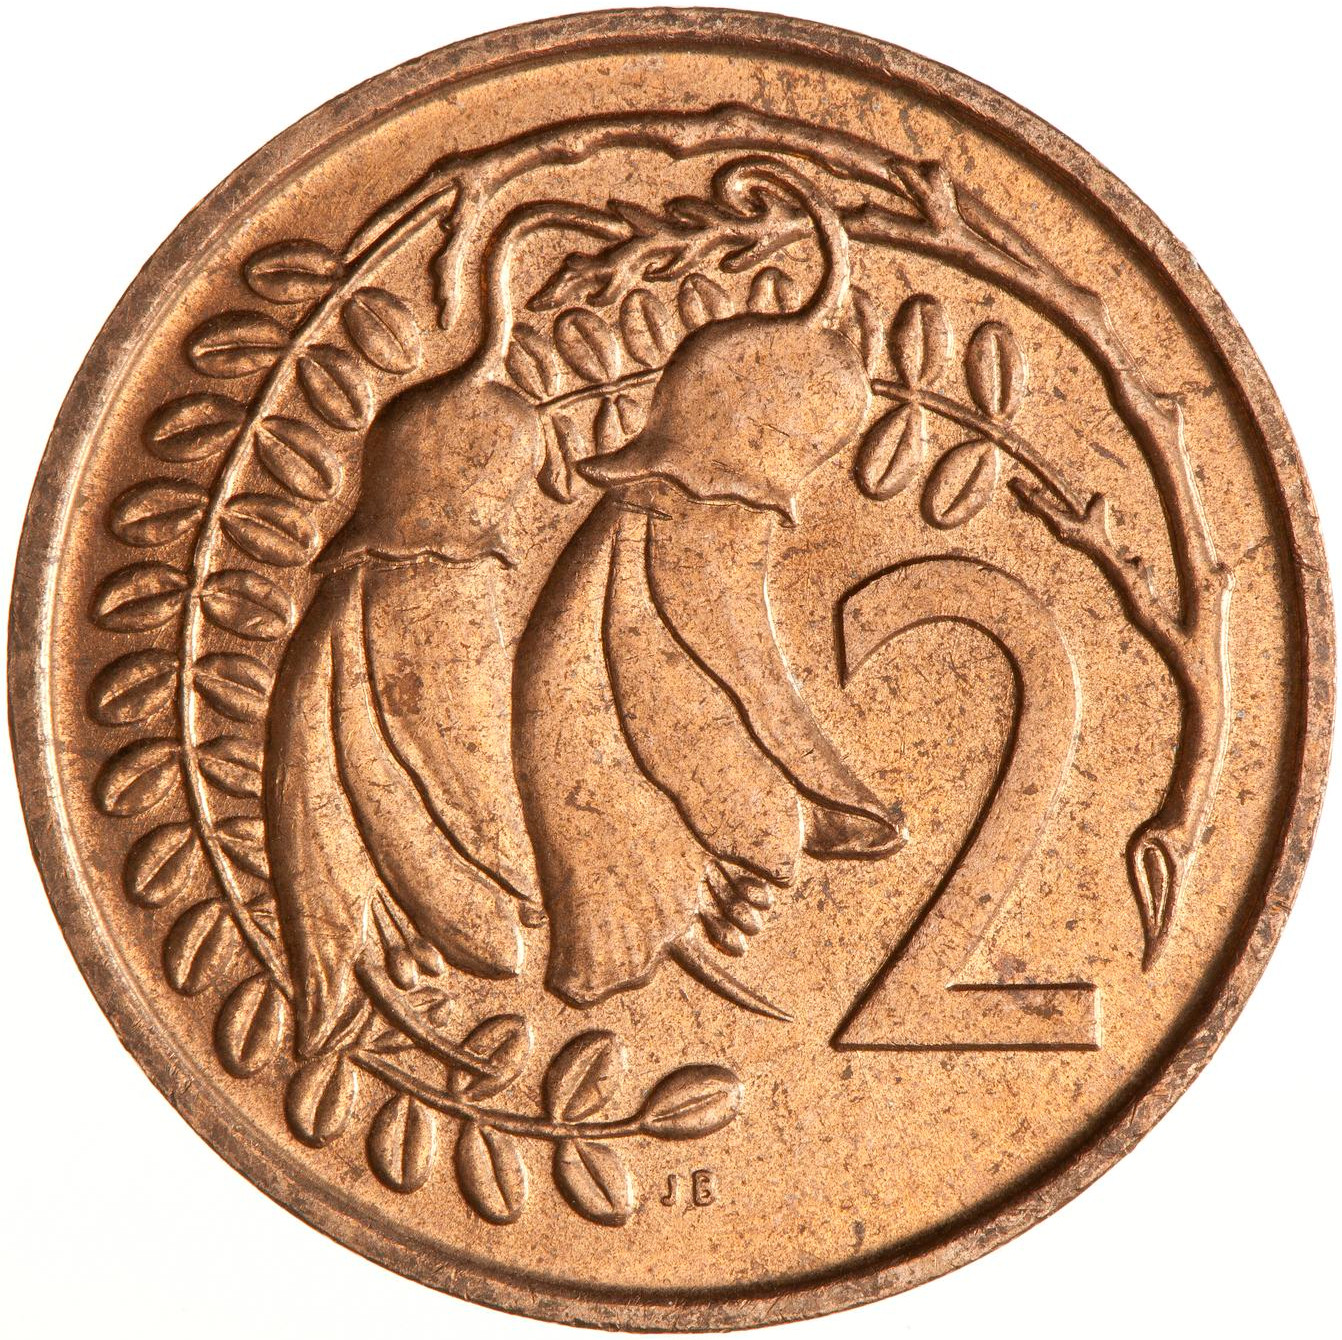 Two Cents 1967: Photo Coin - 2 Cents, New Zealand, 1967